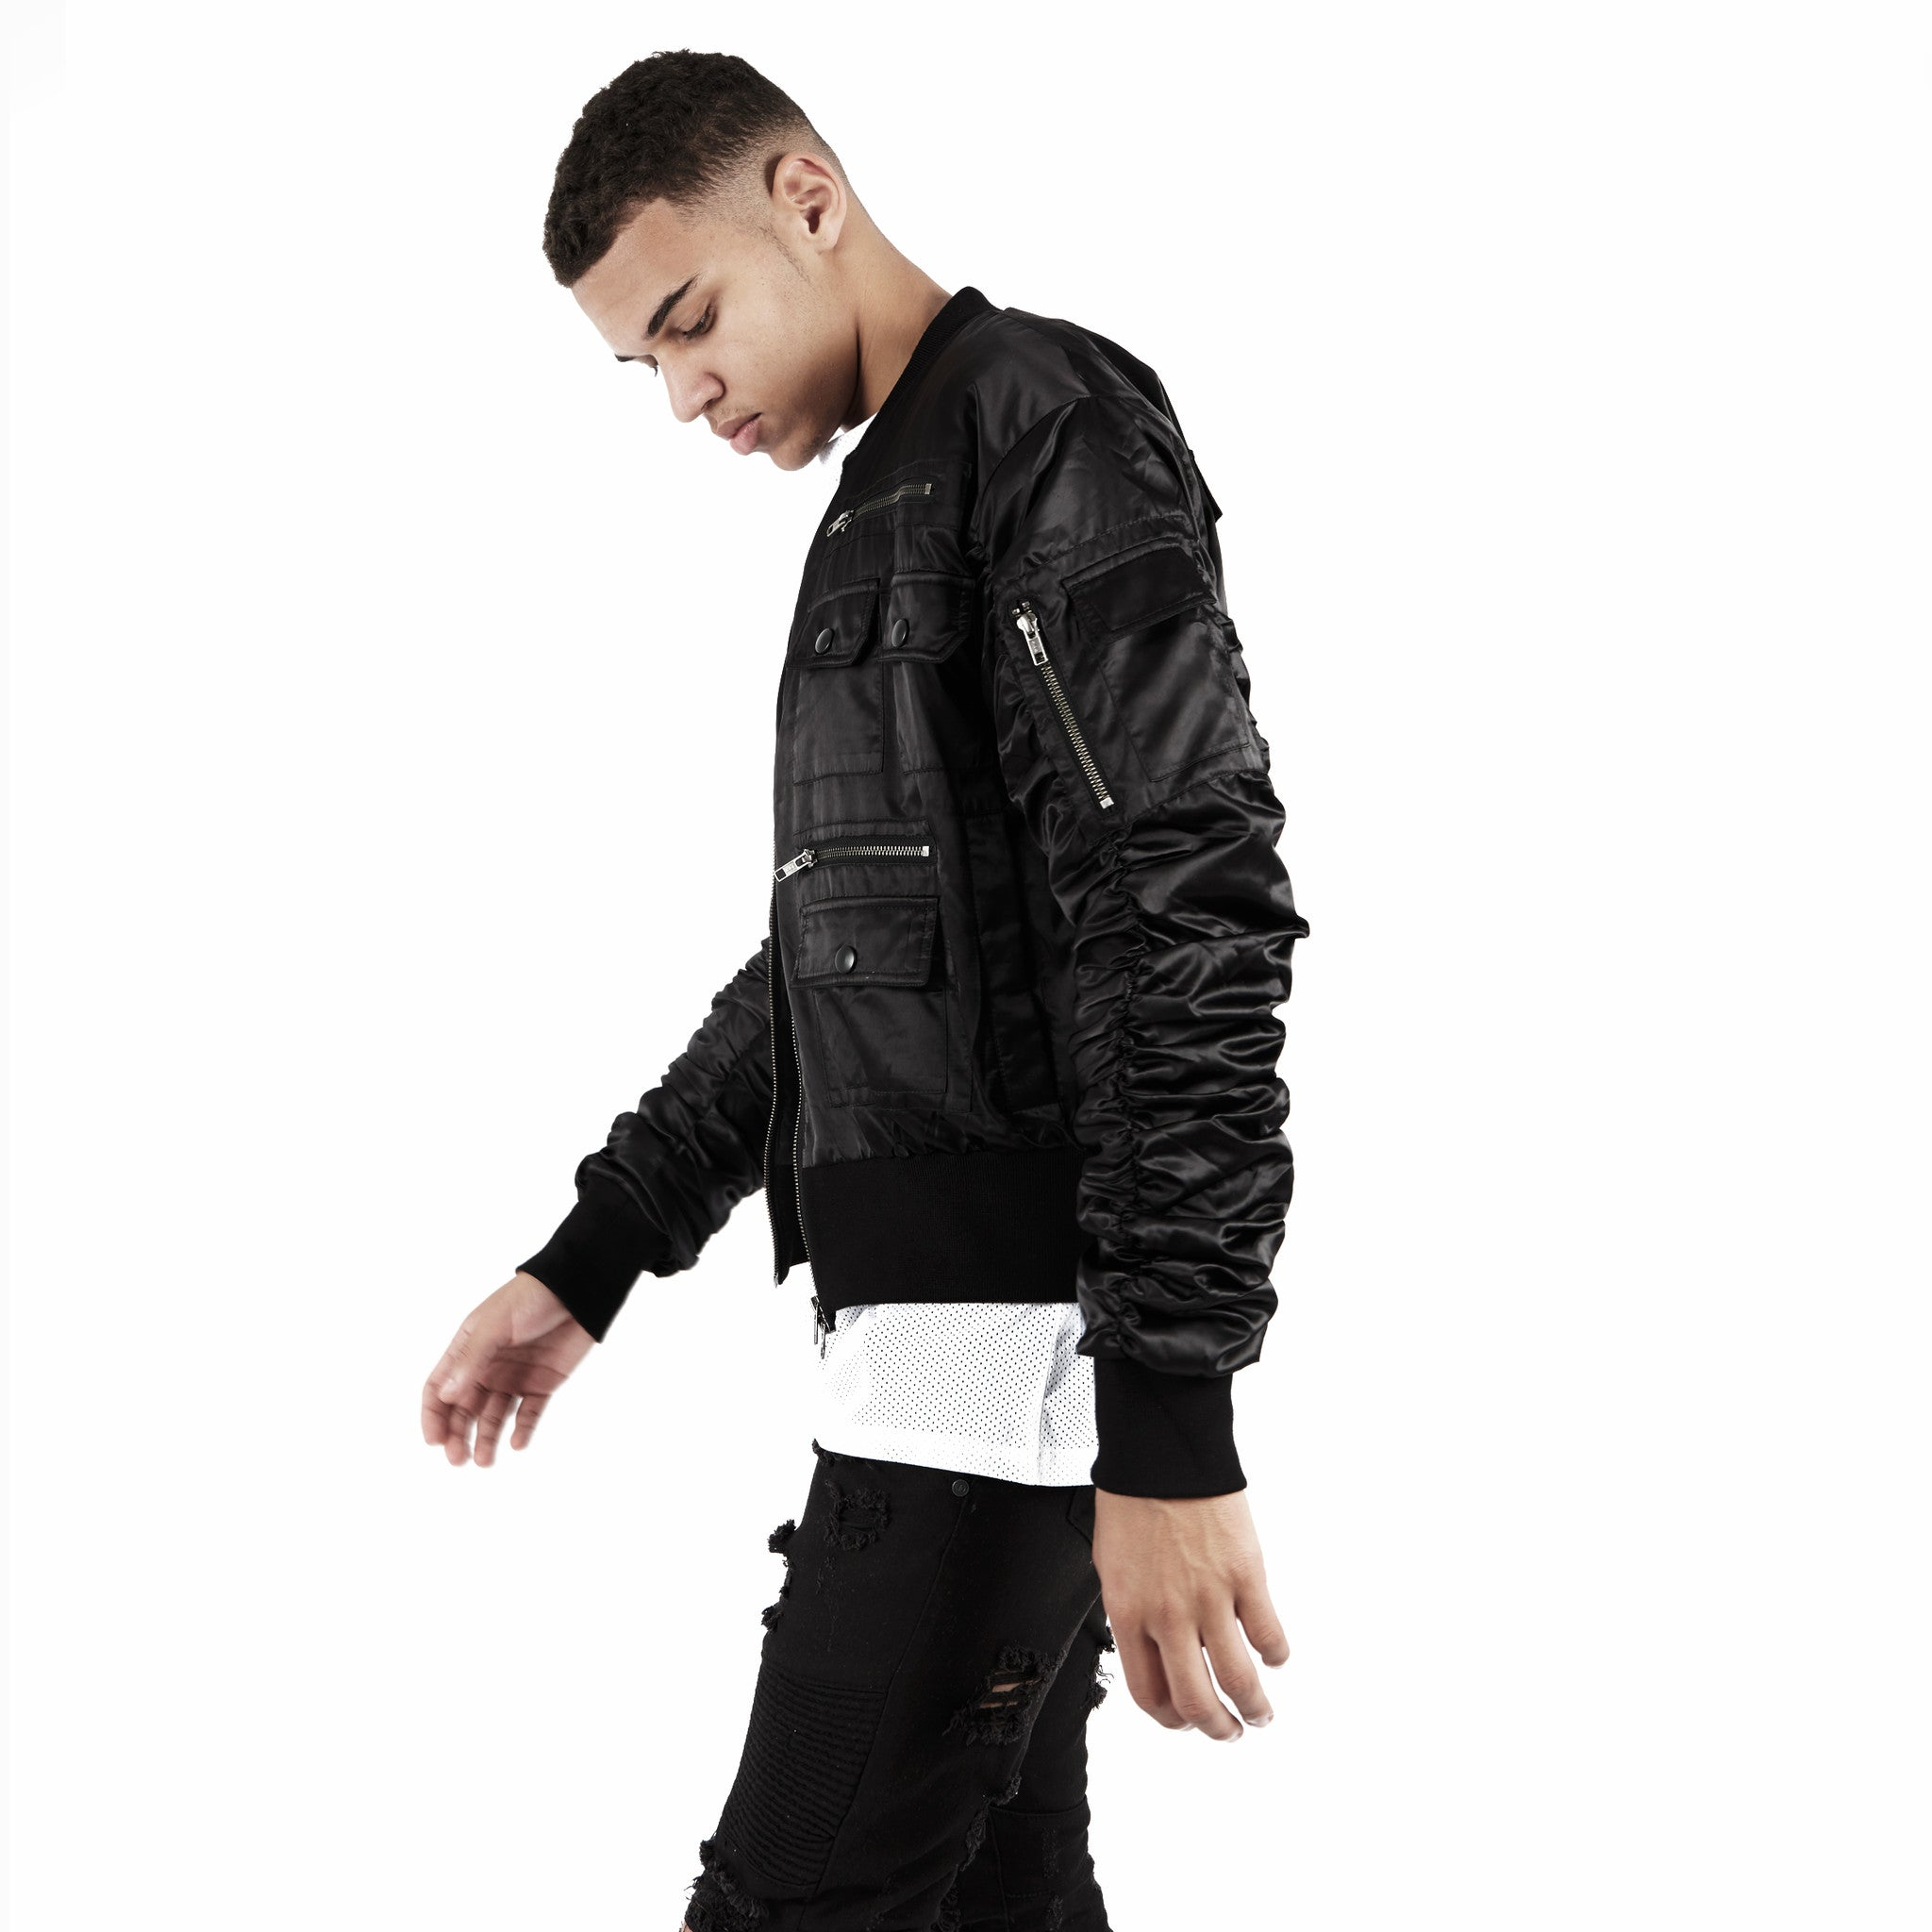 JK263 Exile Tactical Bomber Jacket - Black - underated london - underatedco - 1